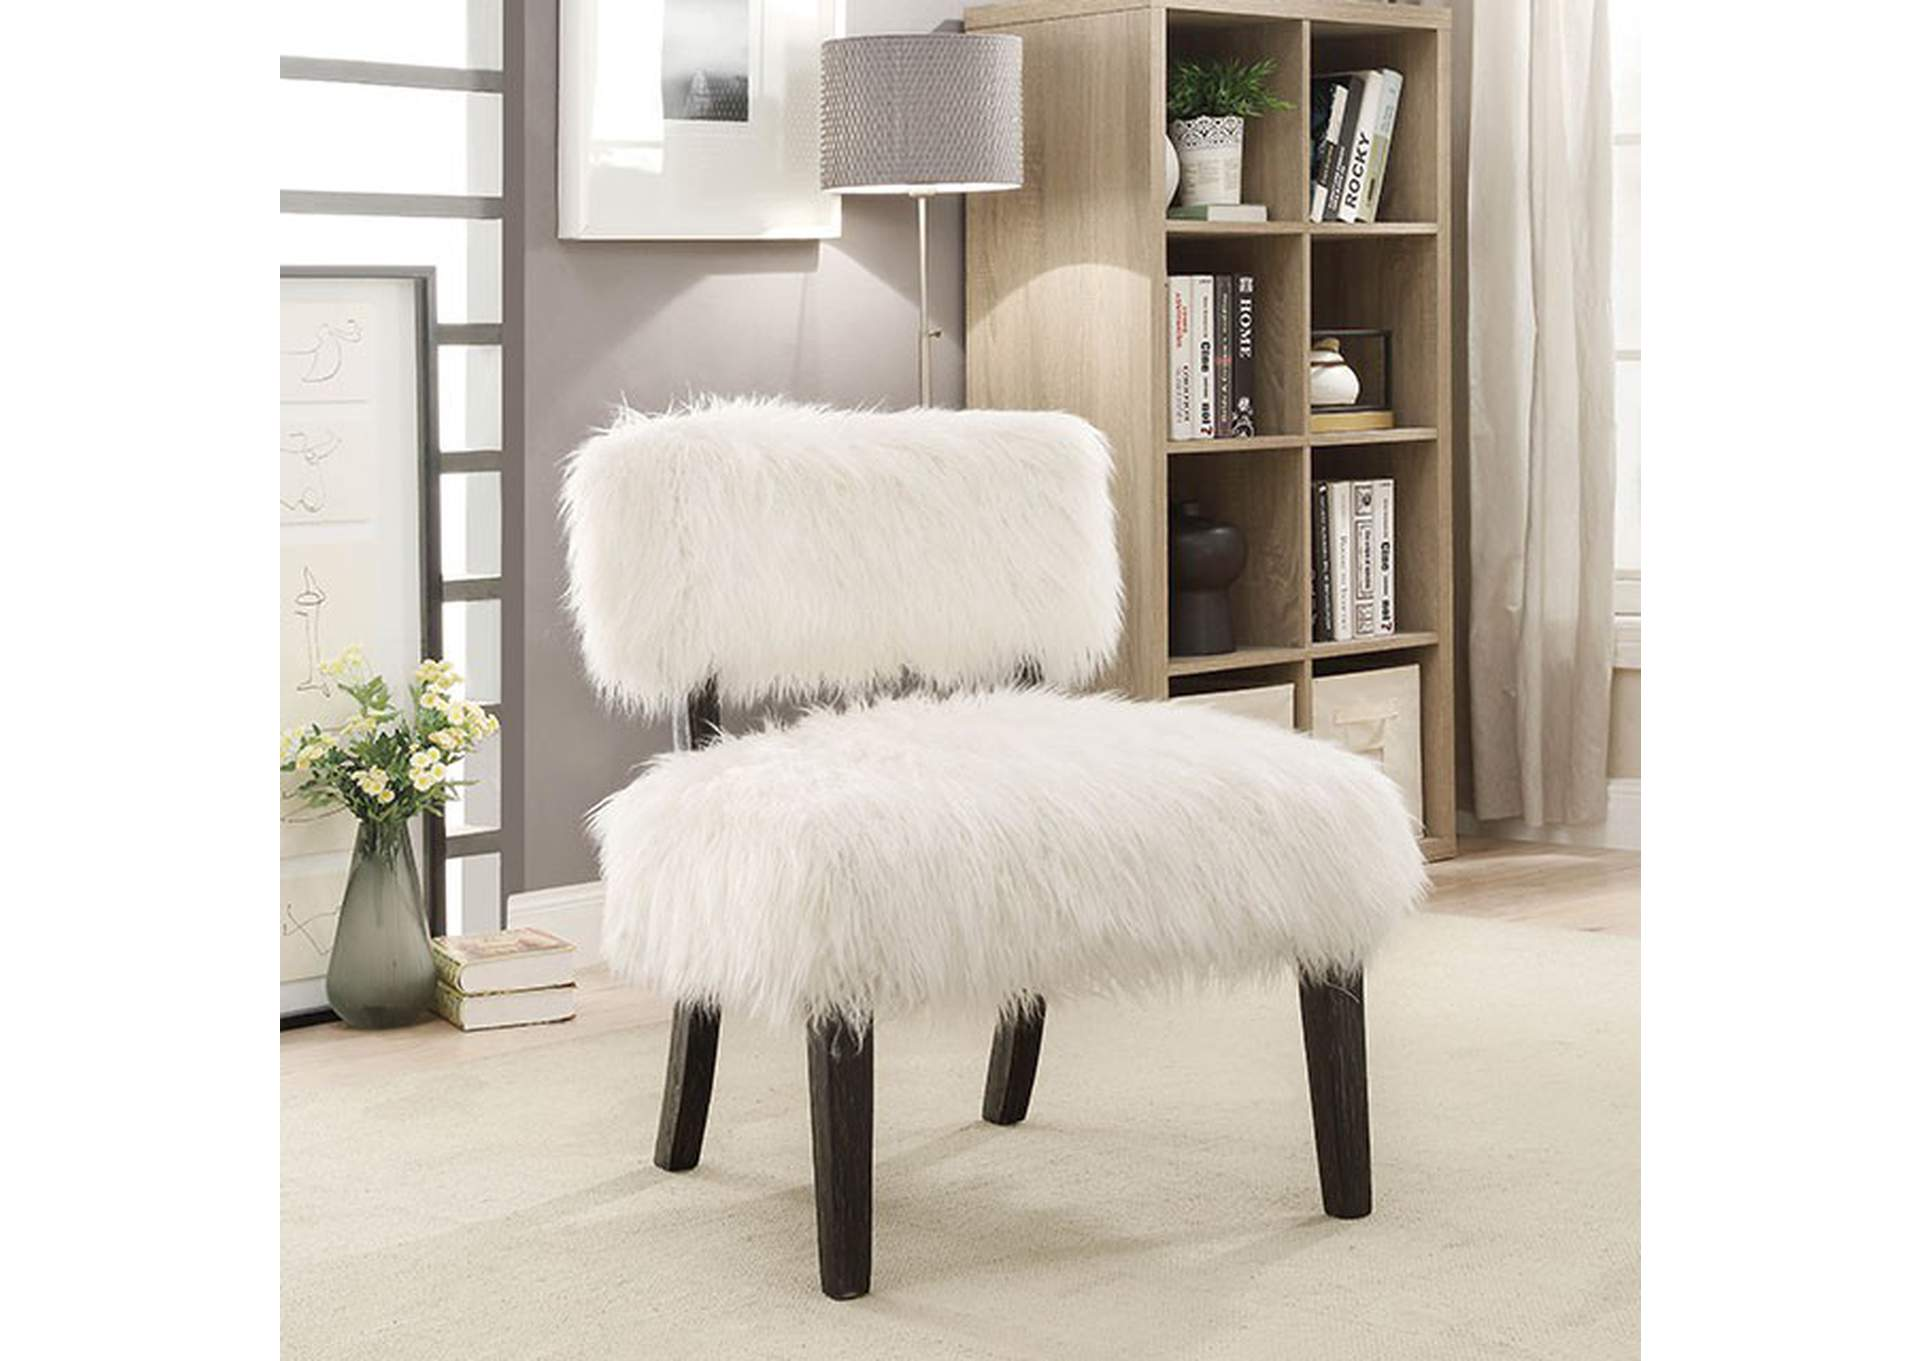 Mystic Sovereign White Accent Chair,Furniture of America